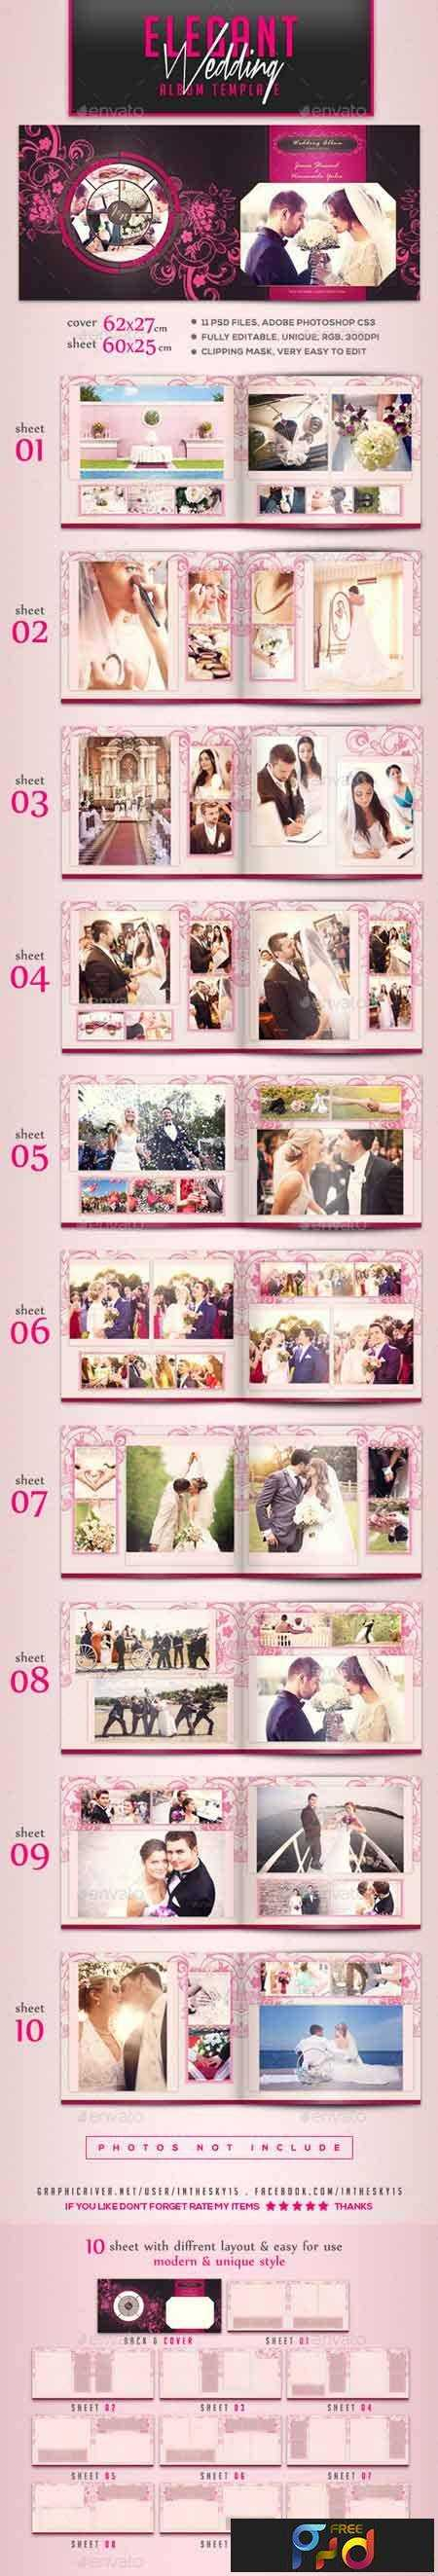 freepsdvn-com_1467948568_elegant-wedding-album-template-16105470